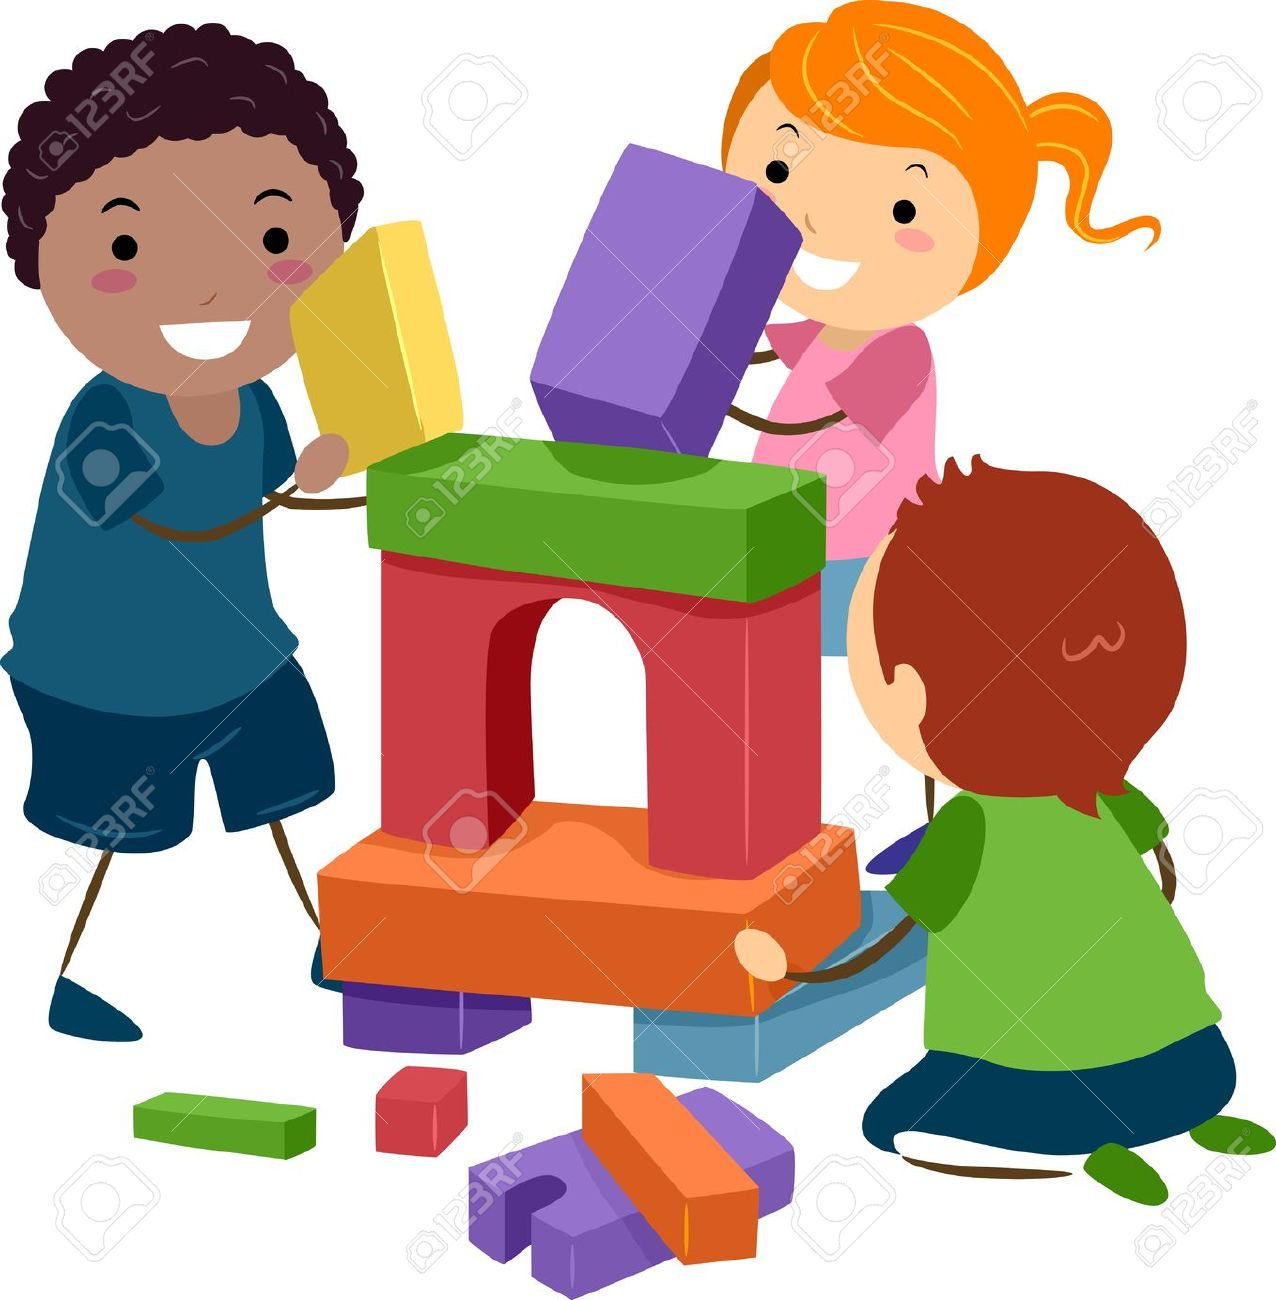 Children Playing With Toys Clipart   Free download on ...